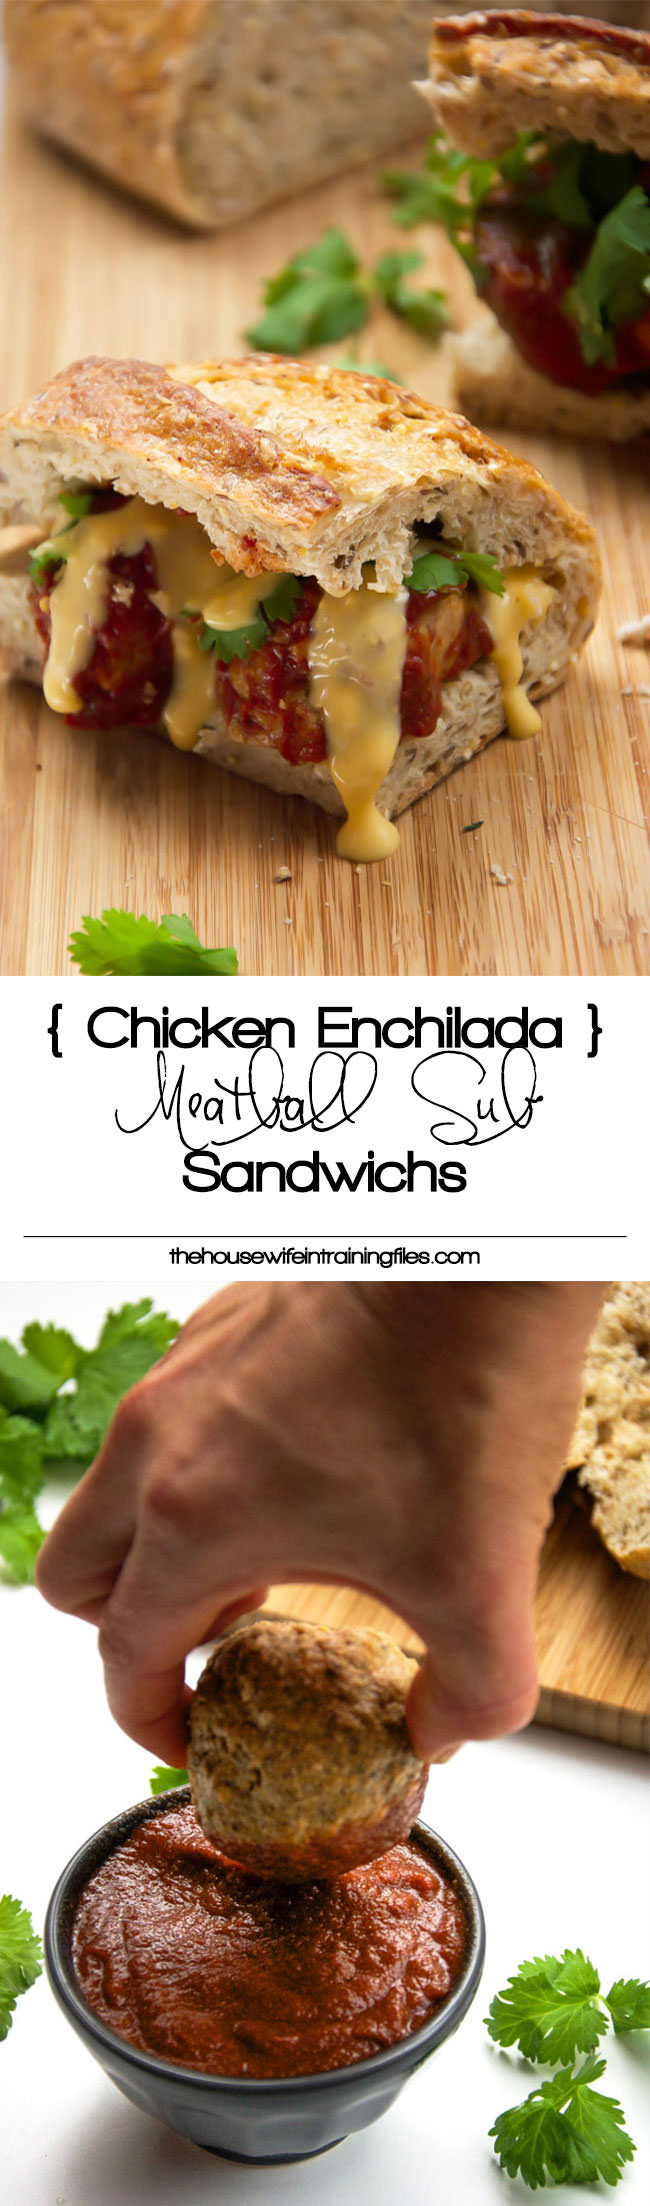 {Slow Cooker} Enchilada Chicken Meatball Sub Sandwiches madeover with lean, ground chicken, enchilada sauce, multigrain rolls and dipped into a skinny queso dip! And they are cooked in the slow cooker to make dinner a breeze!